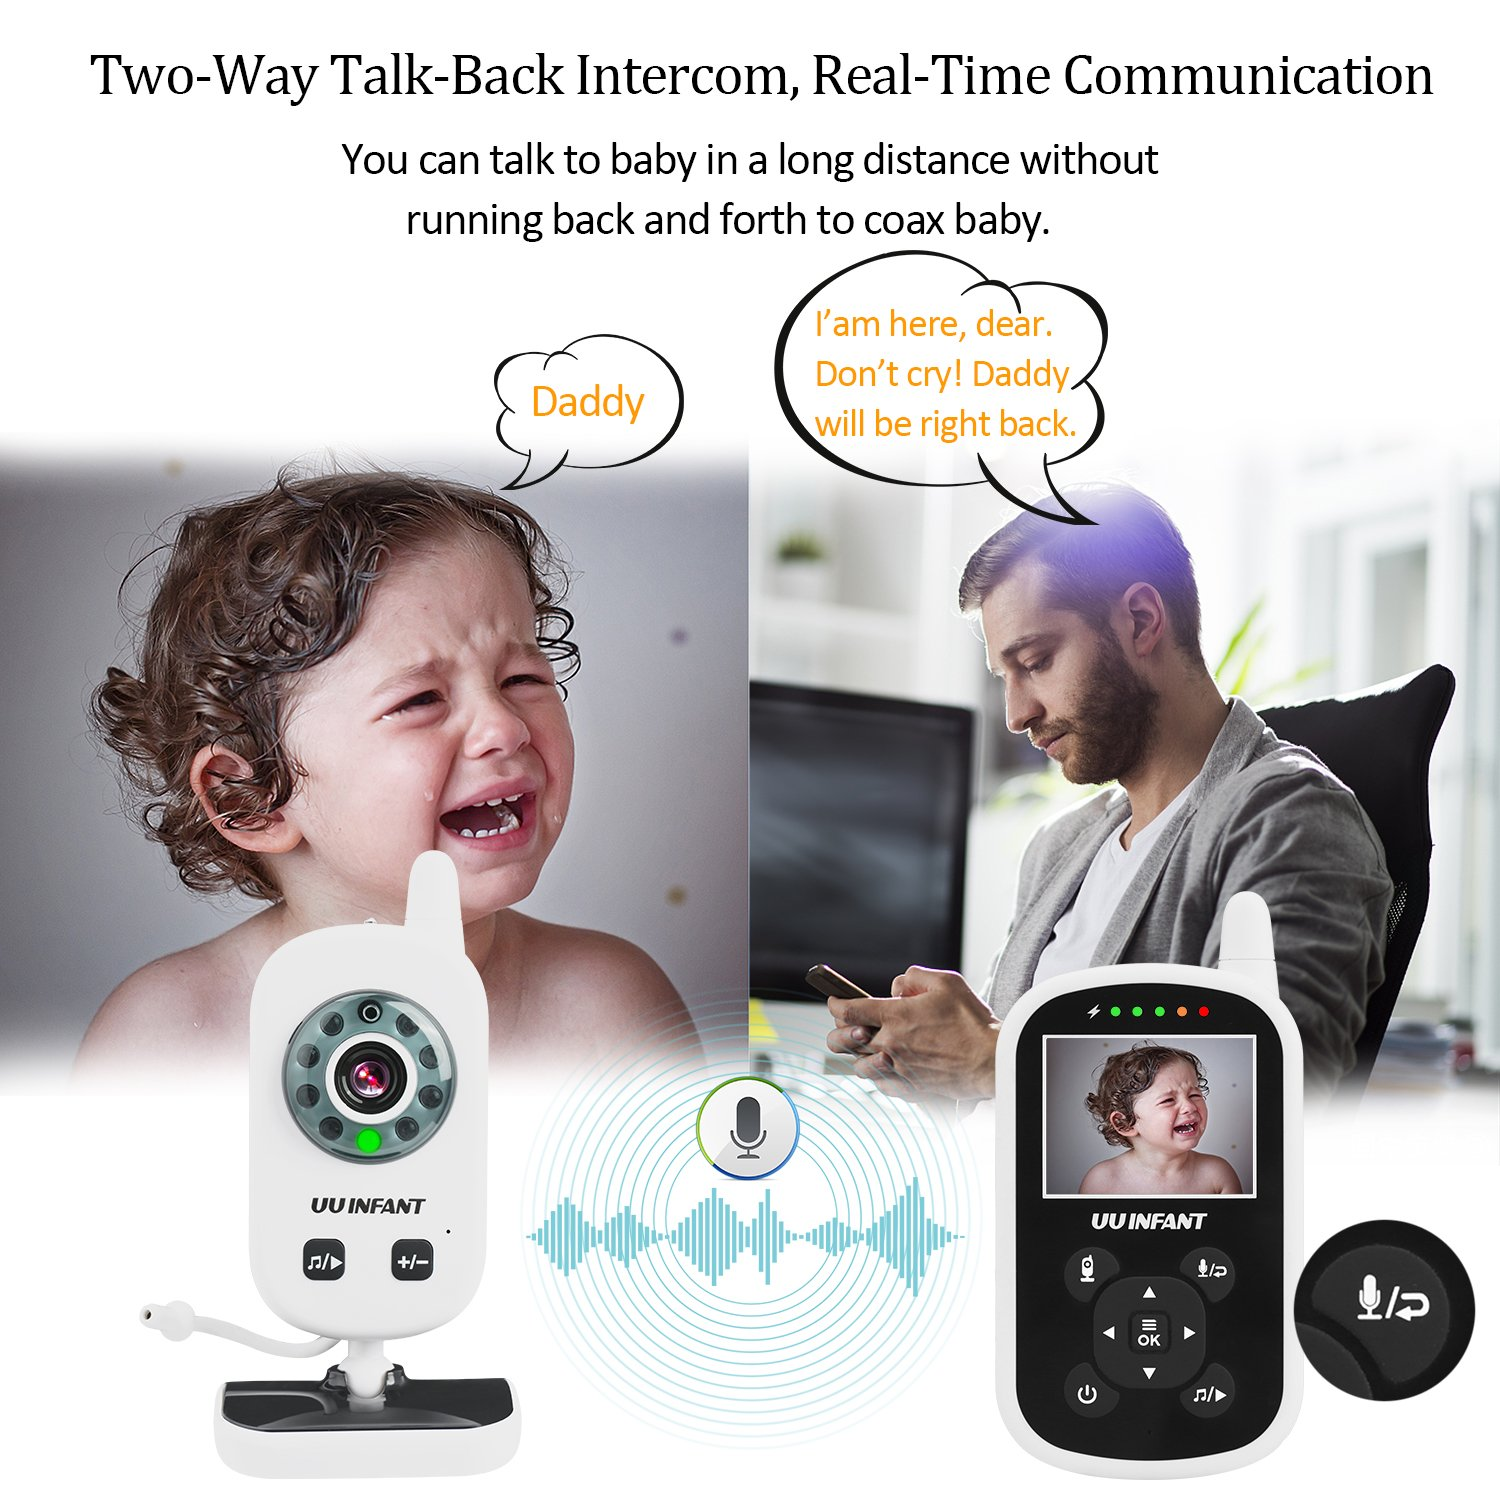 Baby Monitor, Video Baby Monitor with Camera- Wireless Video Monitor for Baby Safety- with Infrared Night Vision/Two Way Talkback/Temperature Monitor/Lullaby-Play (White) by UU Infant (Image #3)